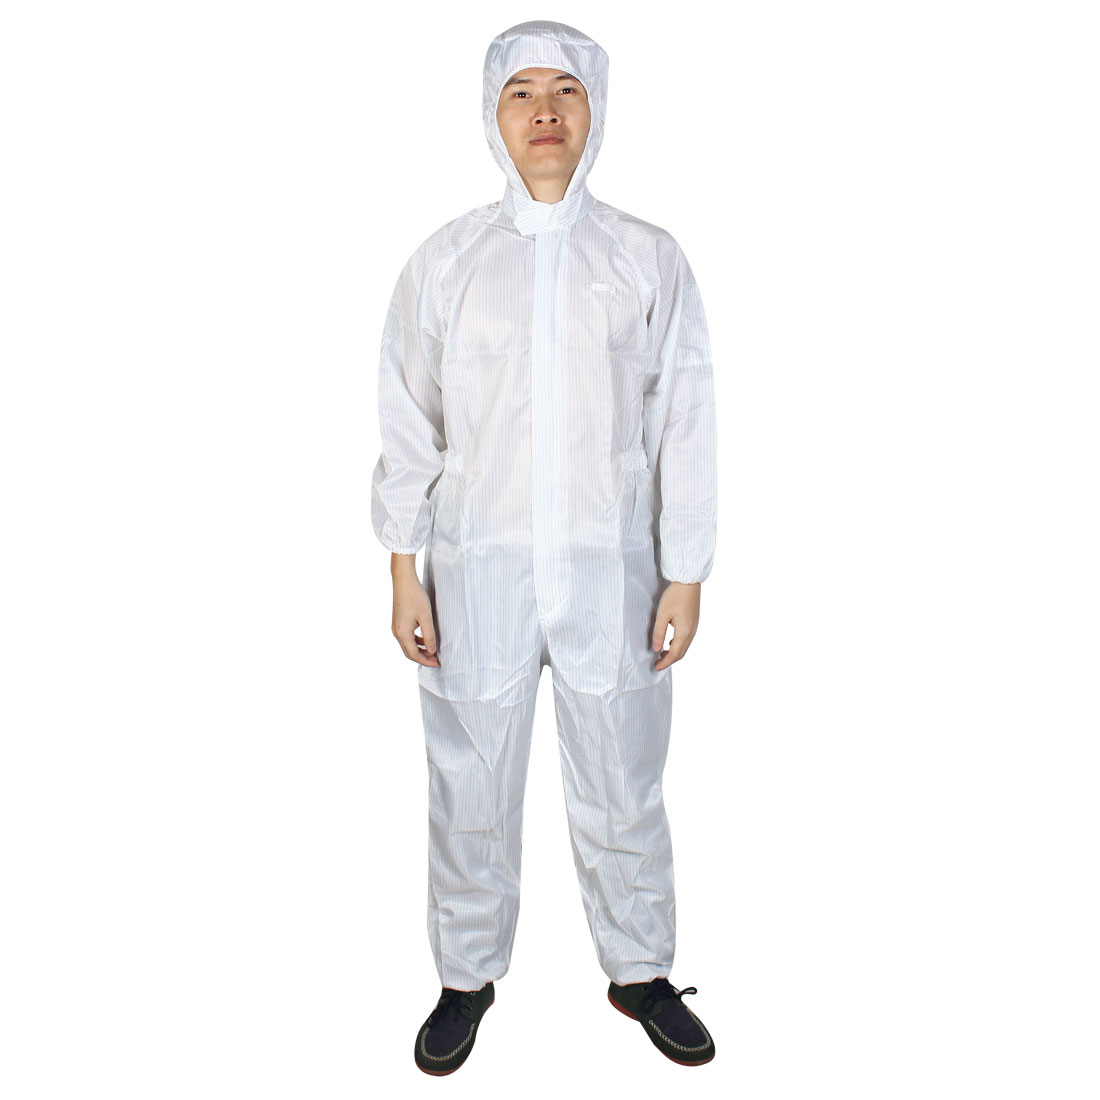 M White ESD Lab Zipper Hooded Anti Static Jumpsuit Coverall Uniform for Unisex